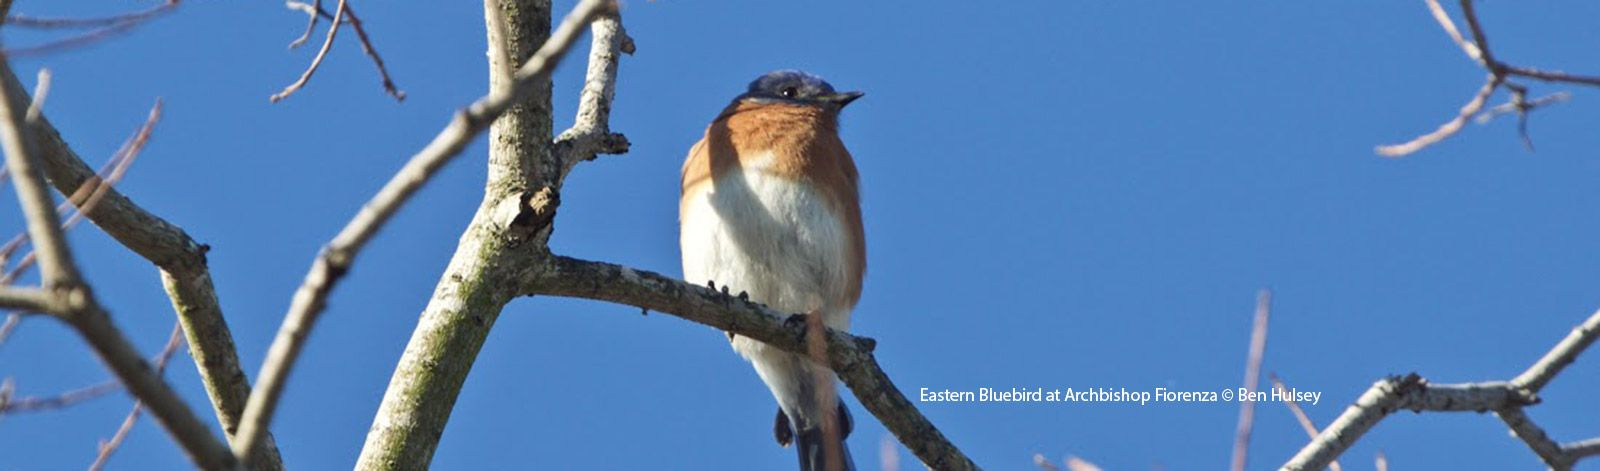 Eastern Bluebird at Archbishop Fiorenza Park by Ben Hulsey